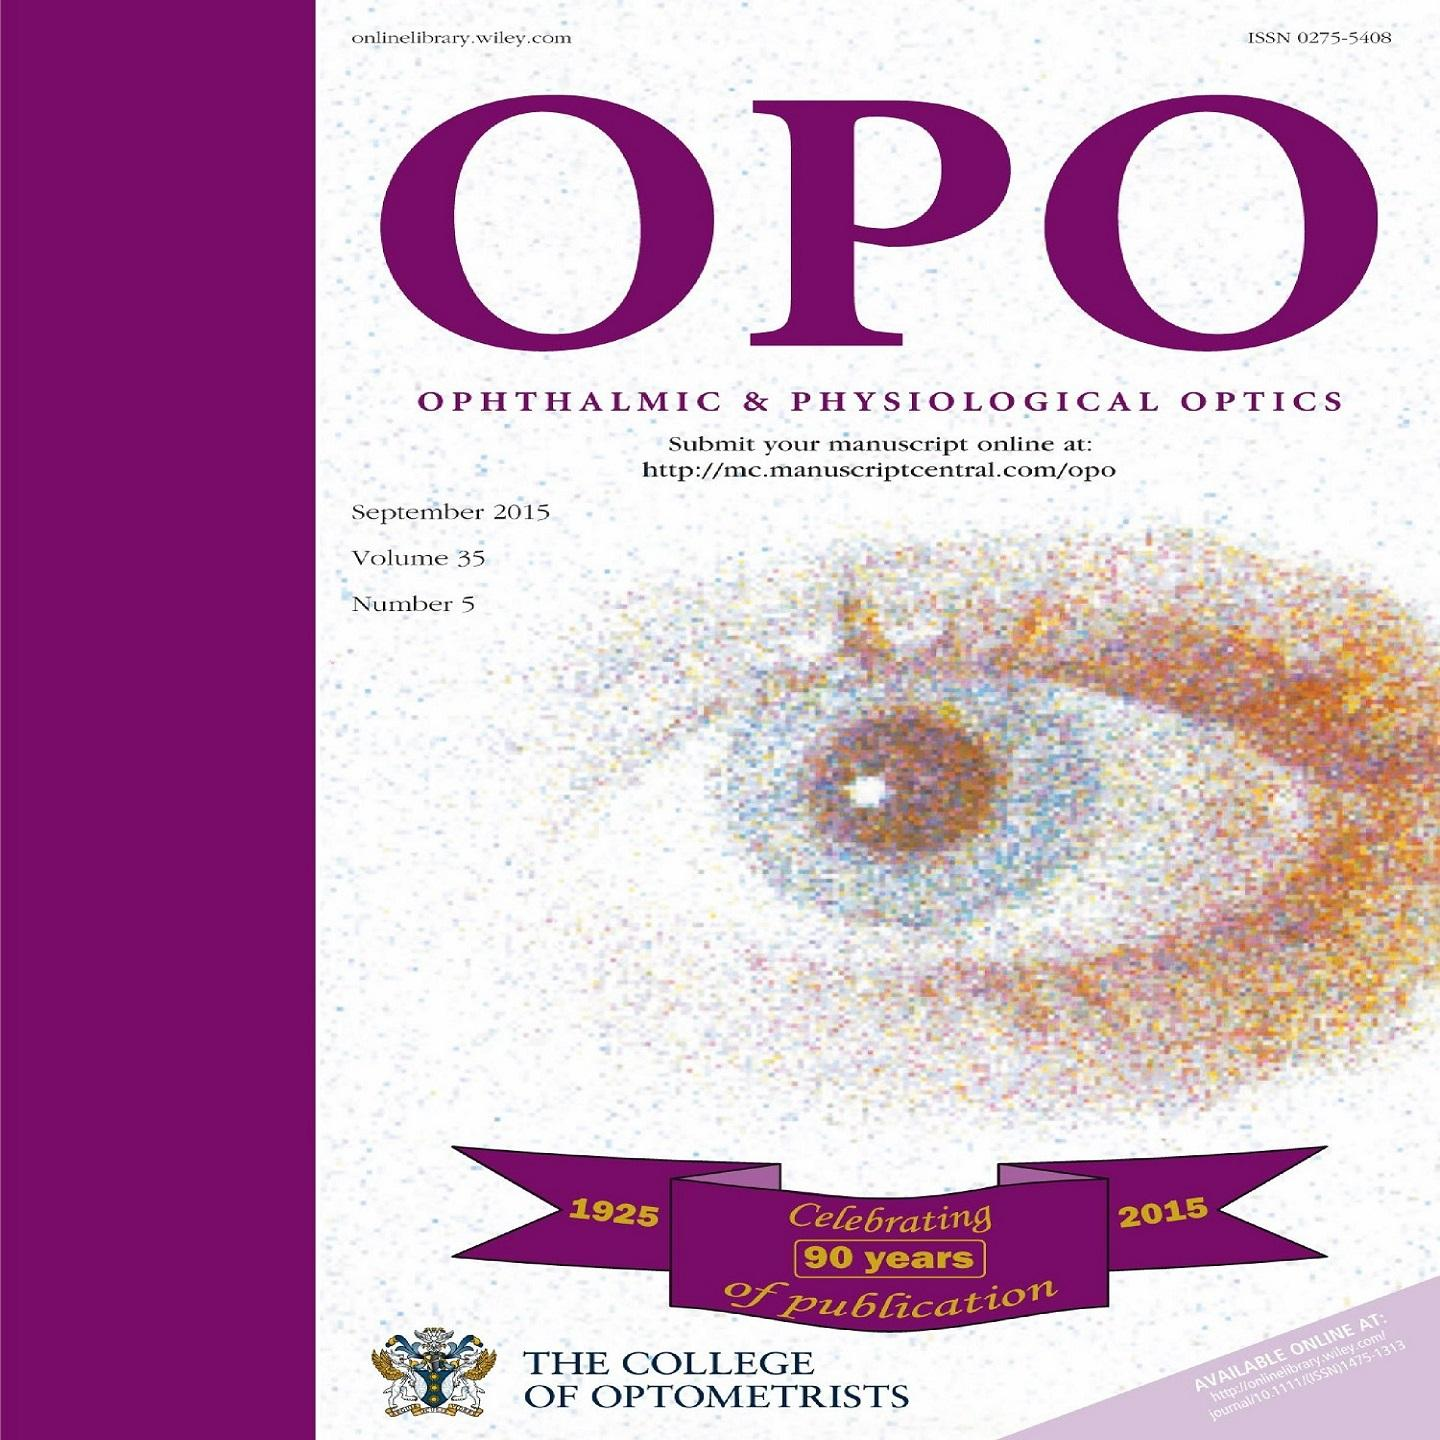 Ophthalmic and Physiological Optics - 90th Anniversary Podcast